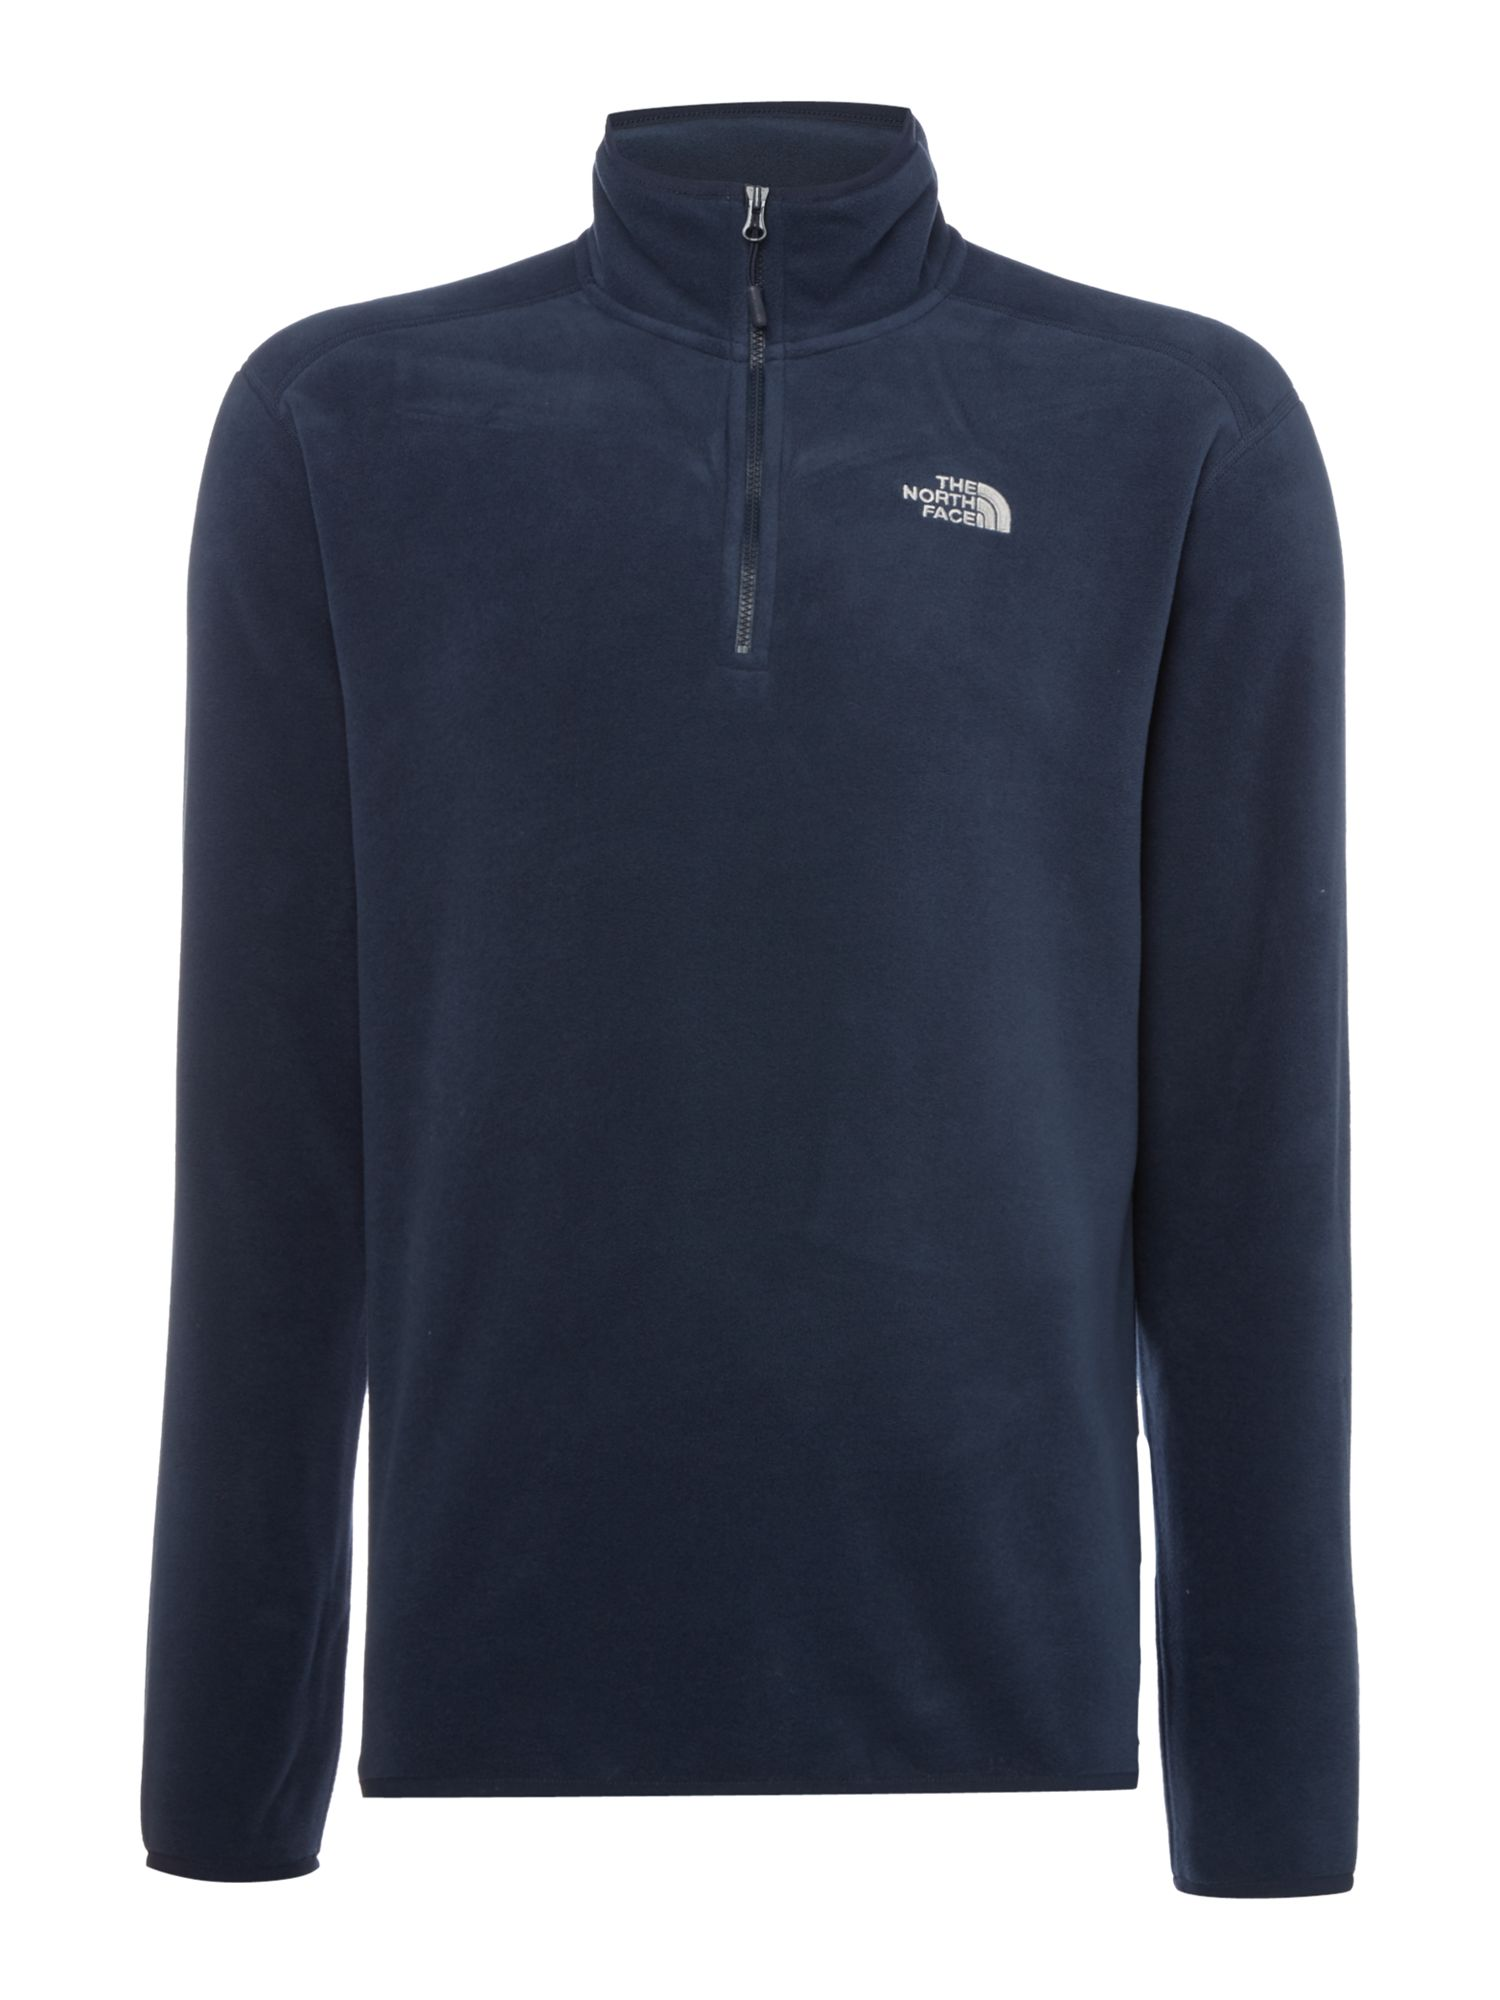 Men's The North Face 100 Glacier 1/4 zip fleece, Blue